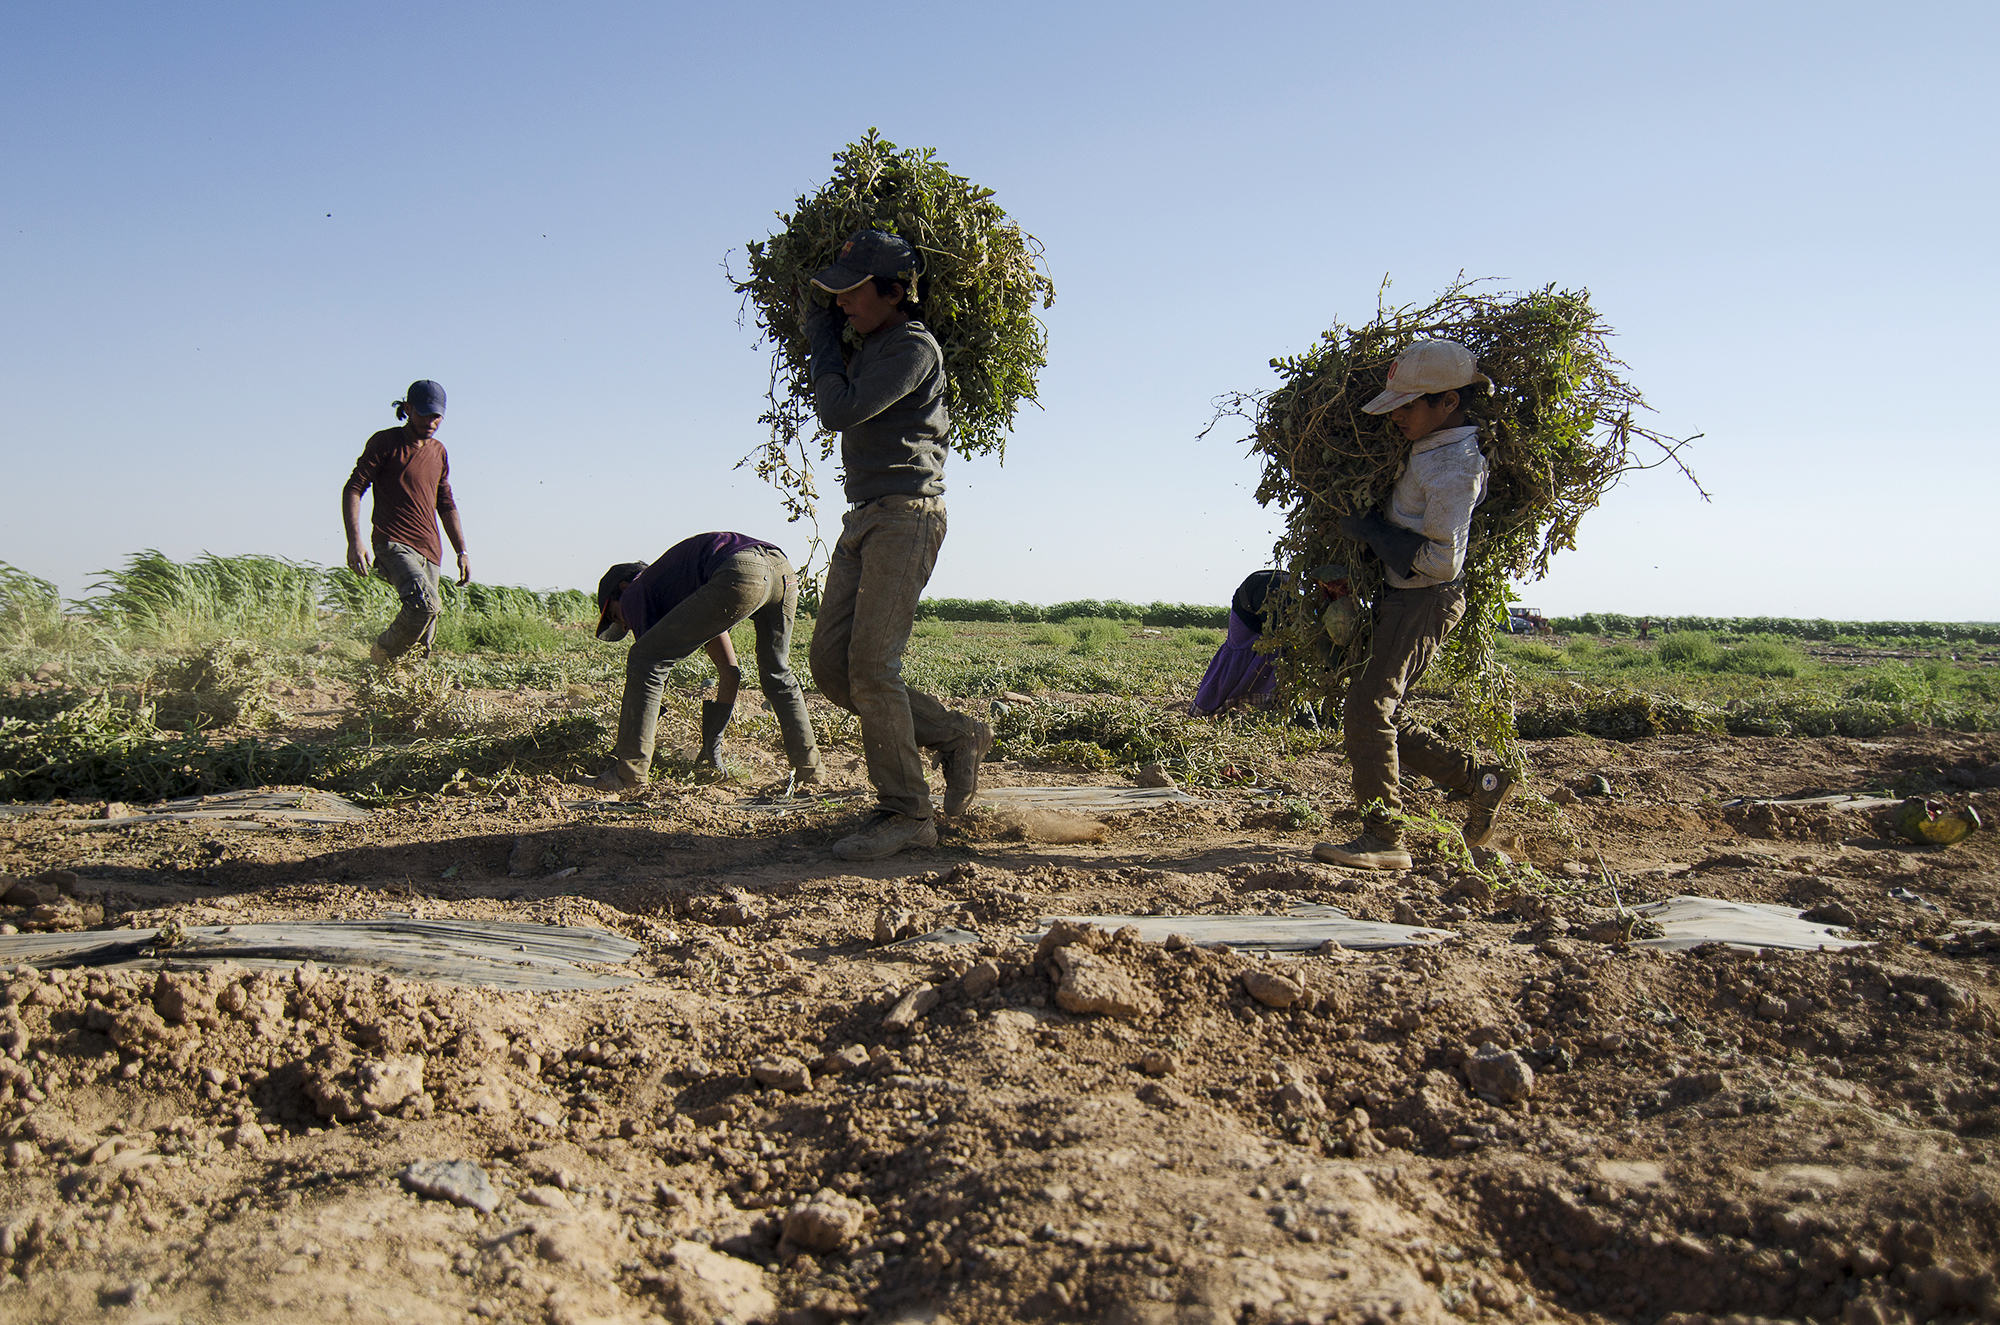 Syrian refugees haul weeds from a farm plot a few paces from Jordan's northern city of Mafraq. Since 2011, some 1.4 million Syrians have fled to Jordan,many of whom are now working in the country's farms, where laws against refugee labor have been harder to enforce. June 2015.